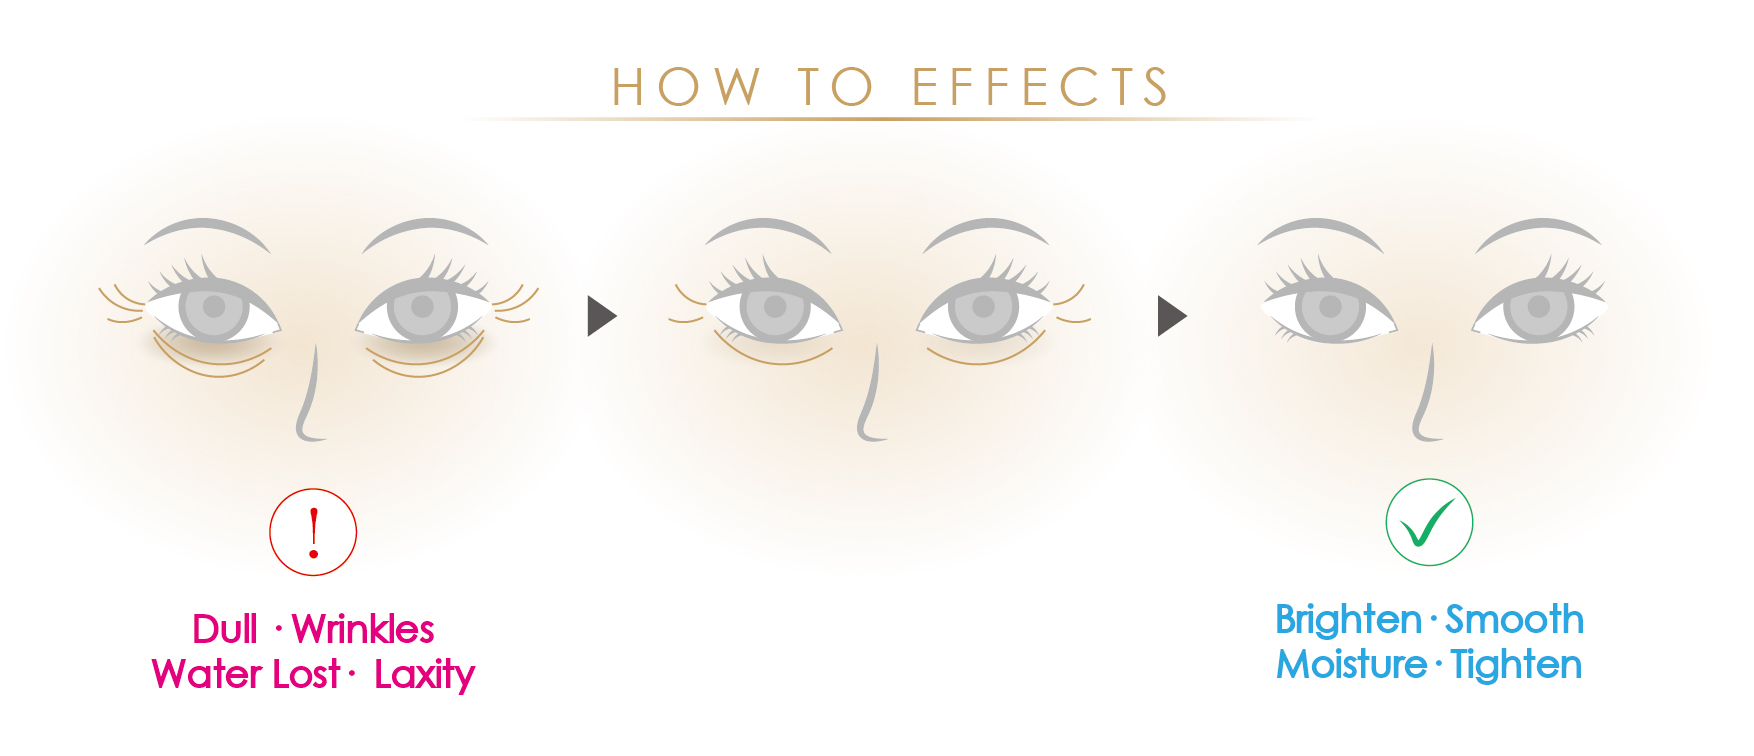 how to effects